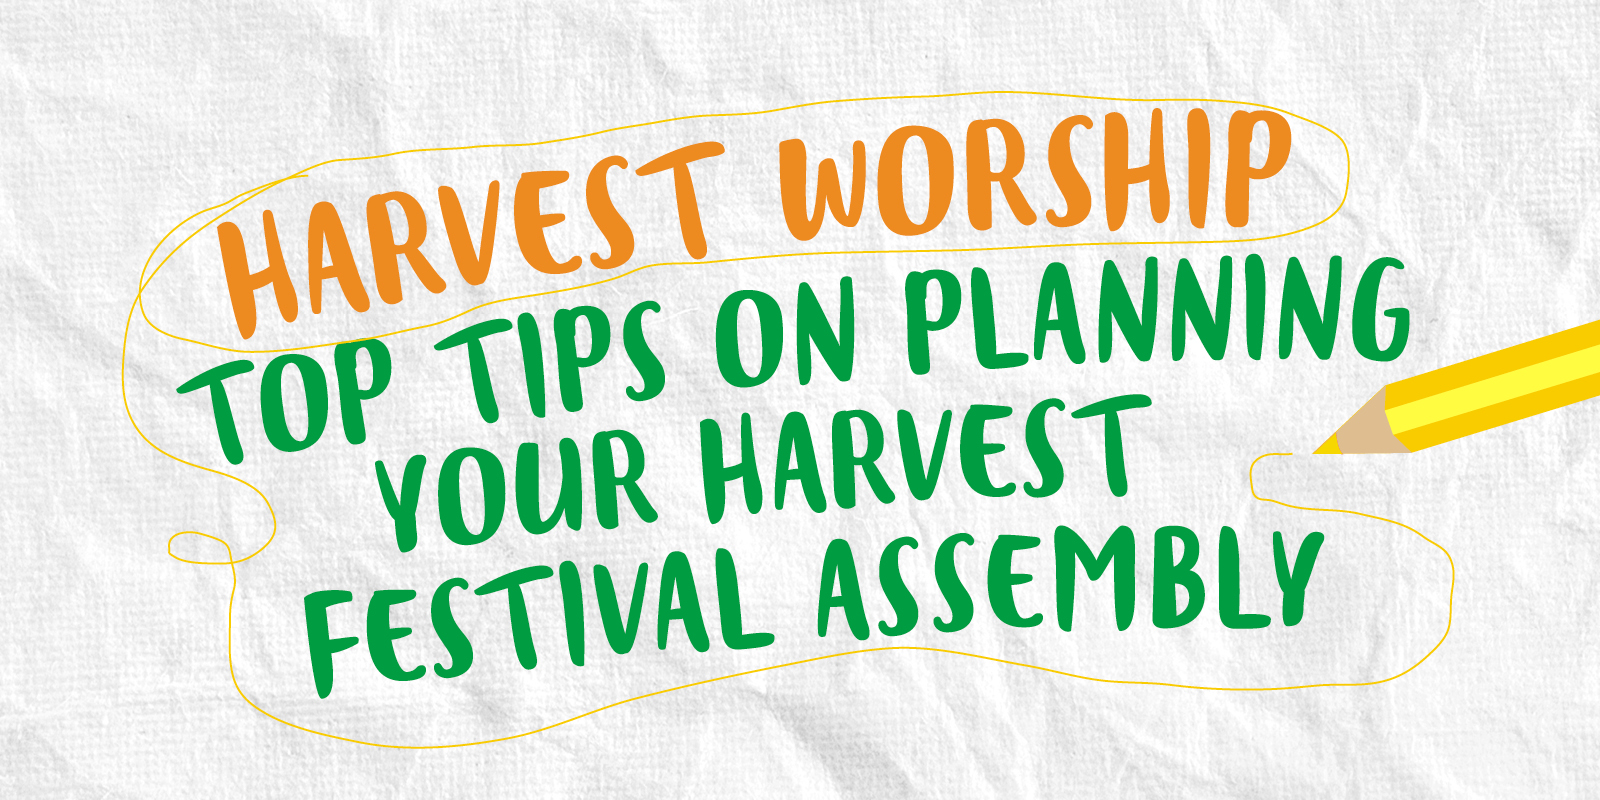 Top Tips On Planning Your Harvest Festival Assembly Out Of The Ark Blog Out Of The Ark Music